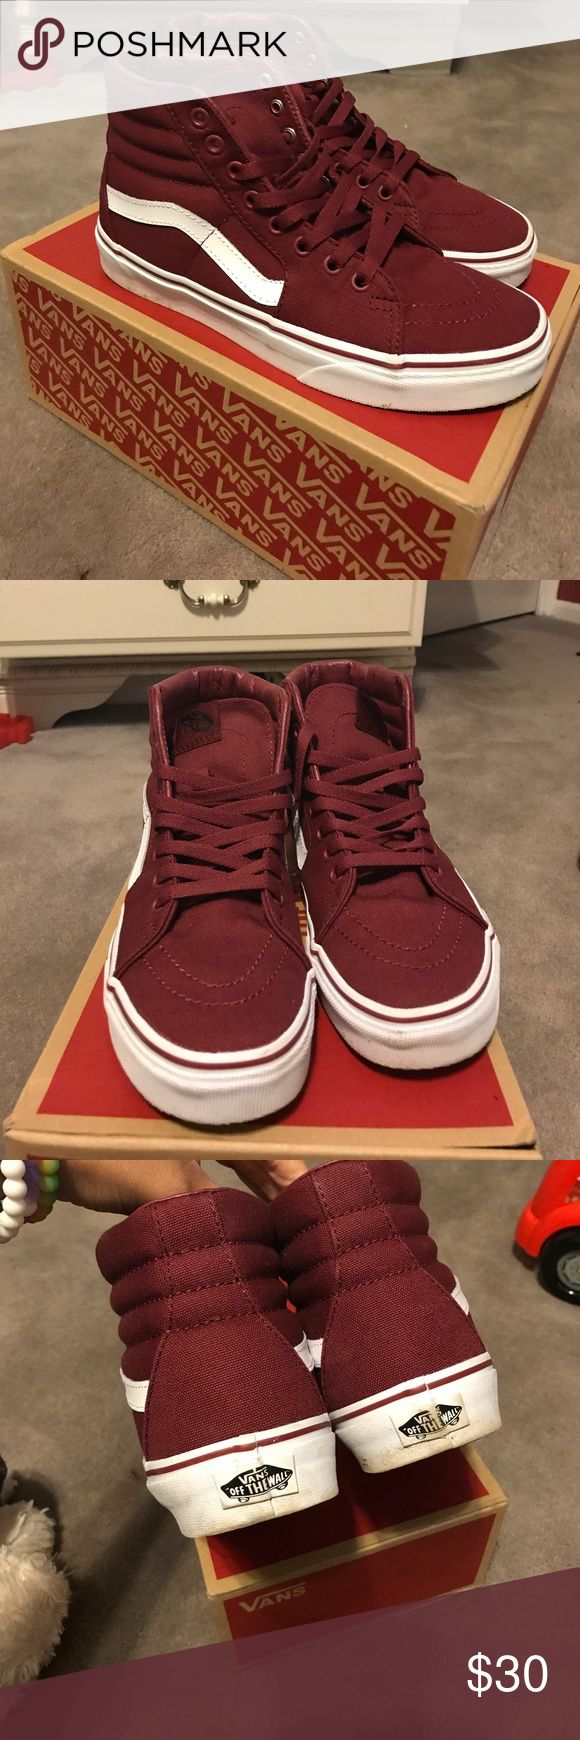 Burgundy vans high tops High top vans worn twice great condition comes with box 6.5 men's 8 women's Vans Shoes Sneakers